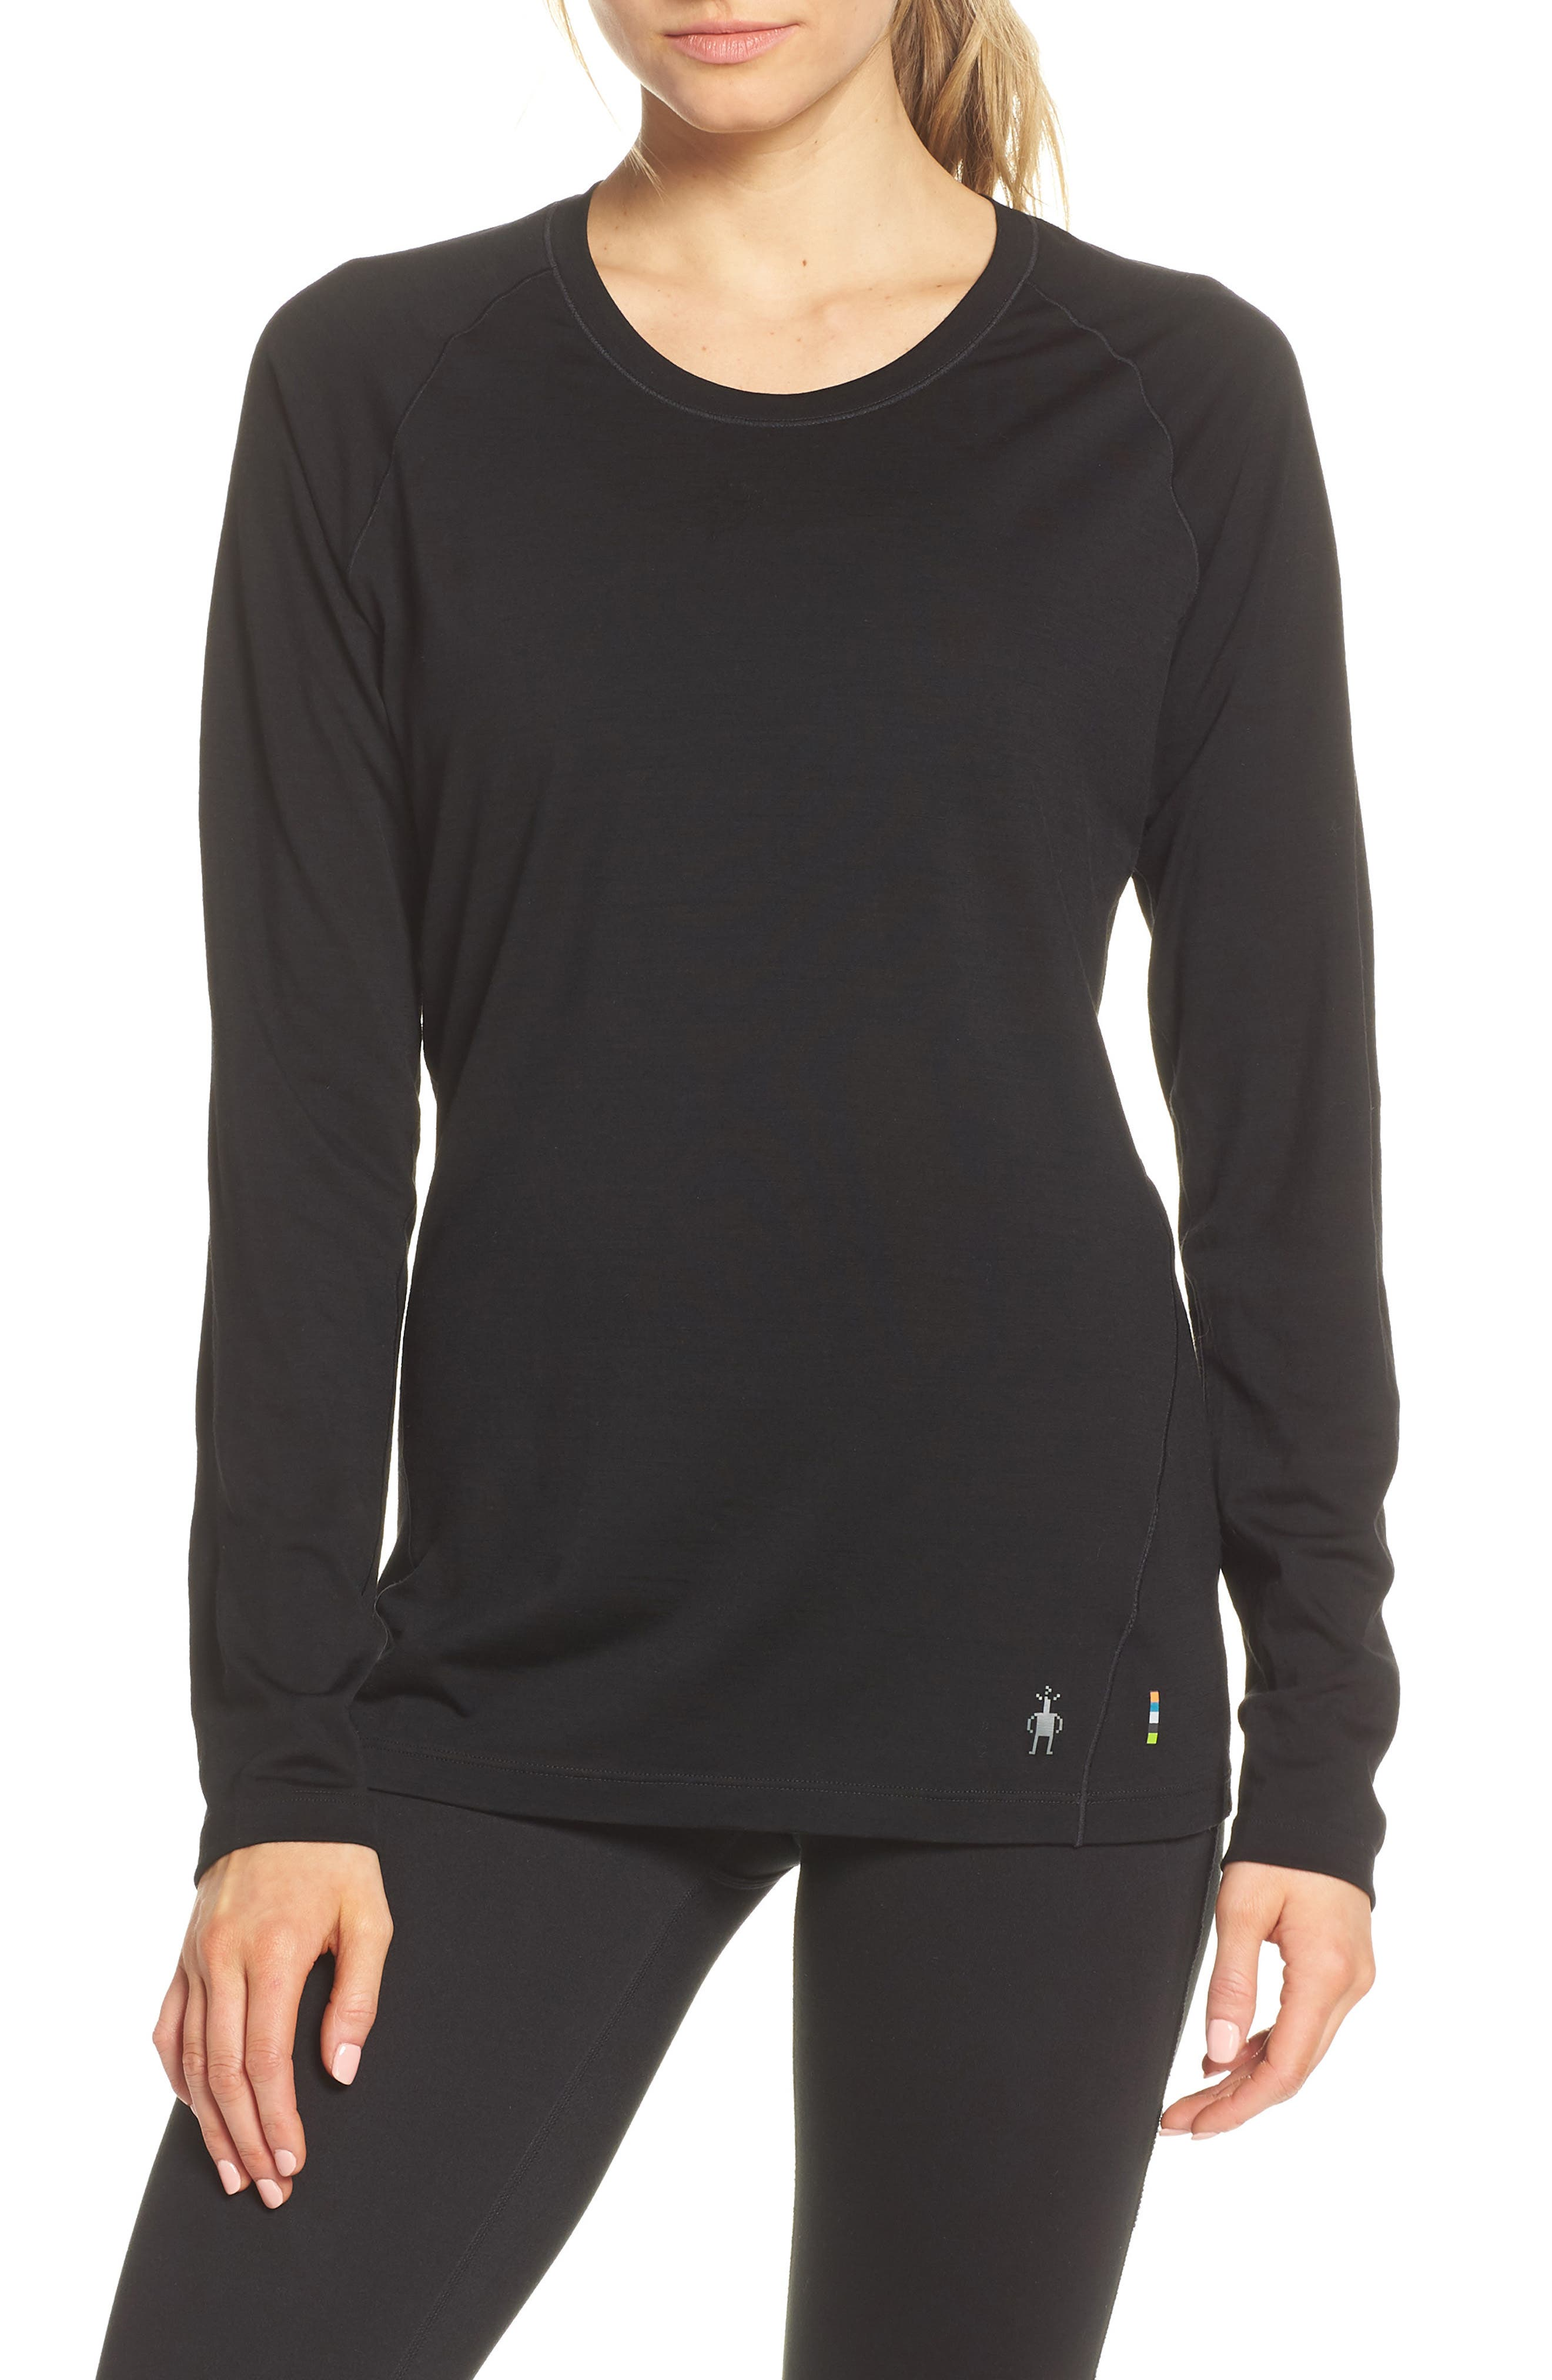 SMARTWOOL Merino Wool 150 Base Layer Top, Main, color, BLACK